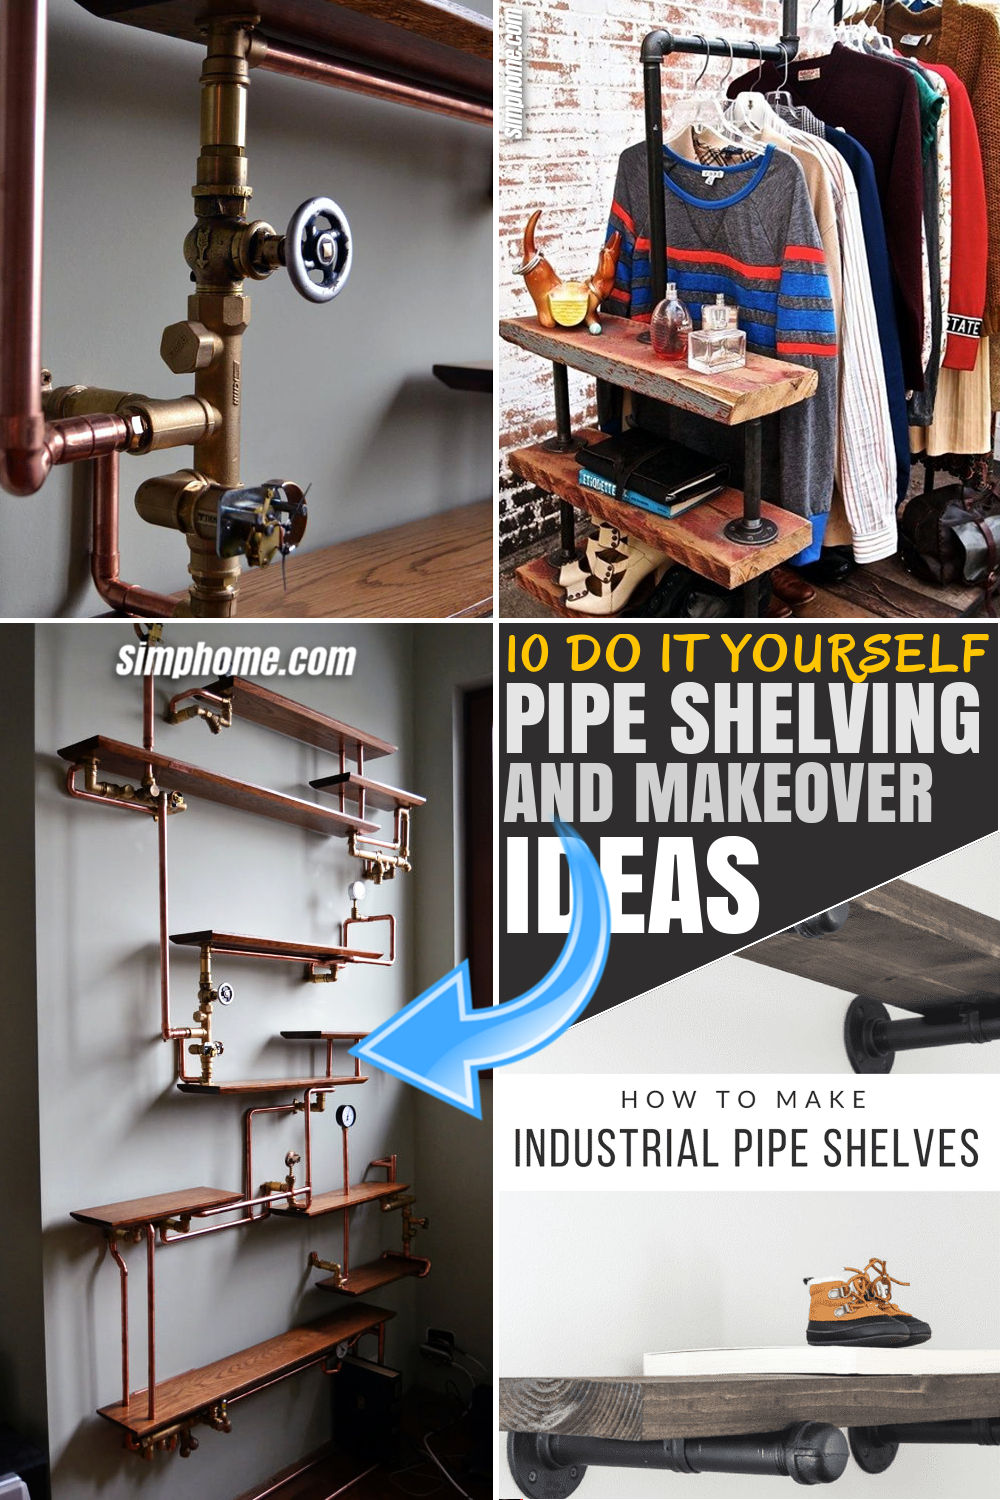 SIMPHOME.COM 10 DIY Pipe Shelving Ideas FEATURED PINTEREST